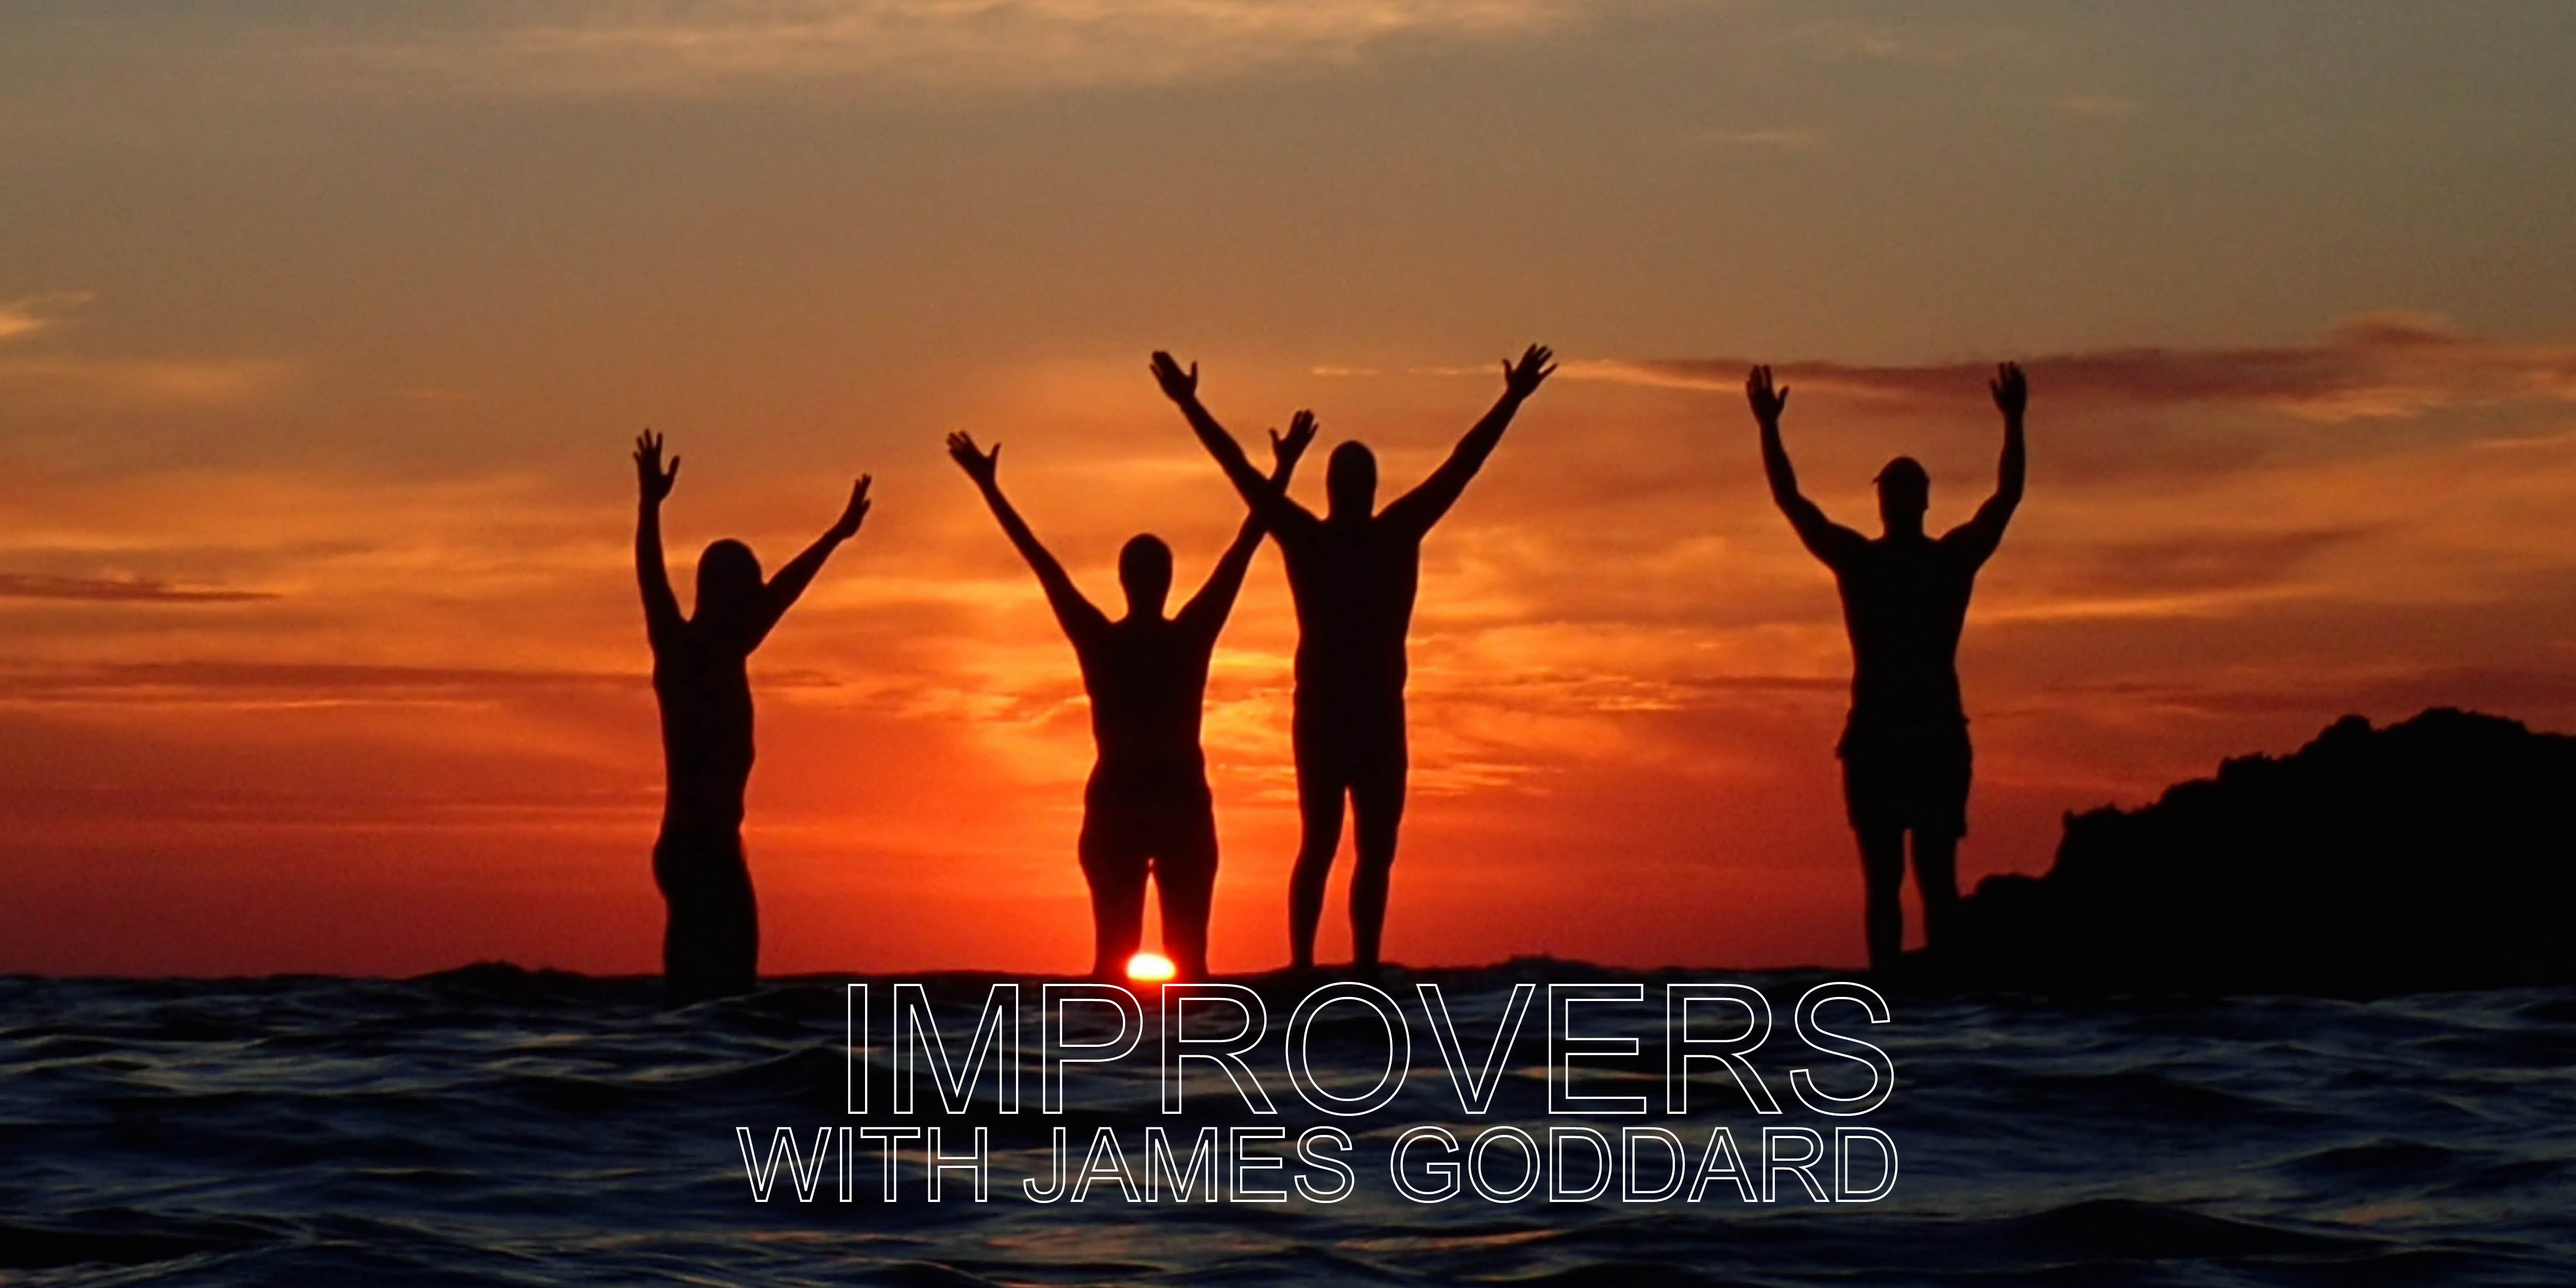 SwimQuest Improvers James Goddard